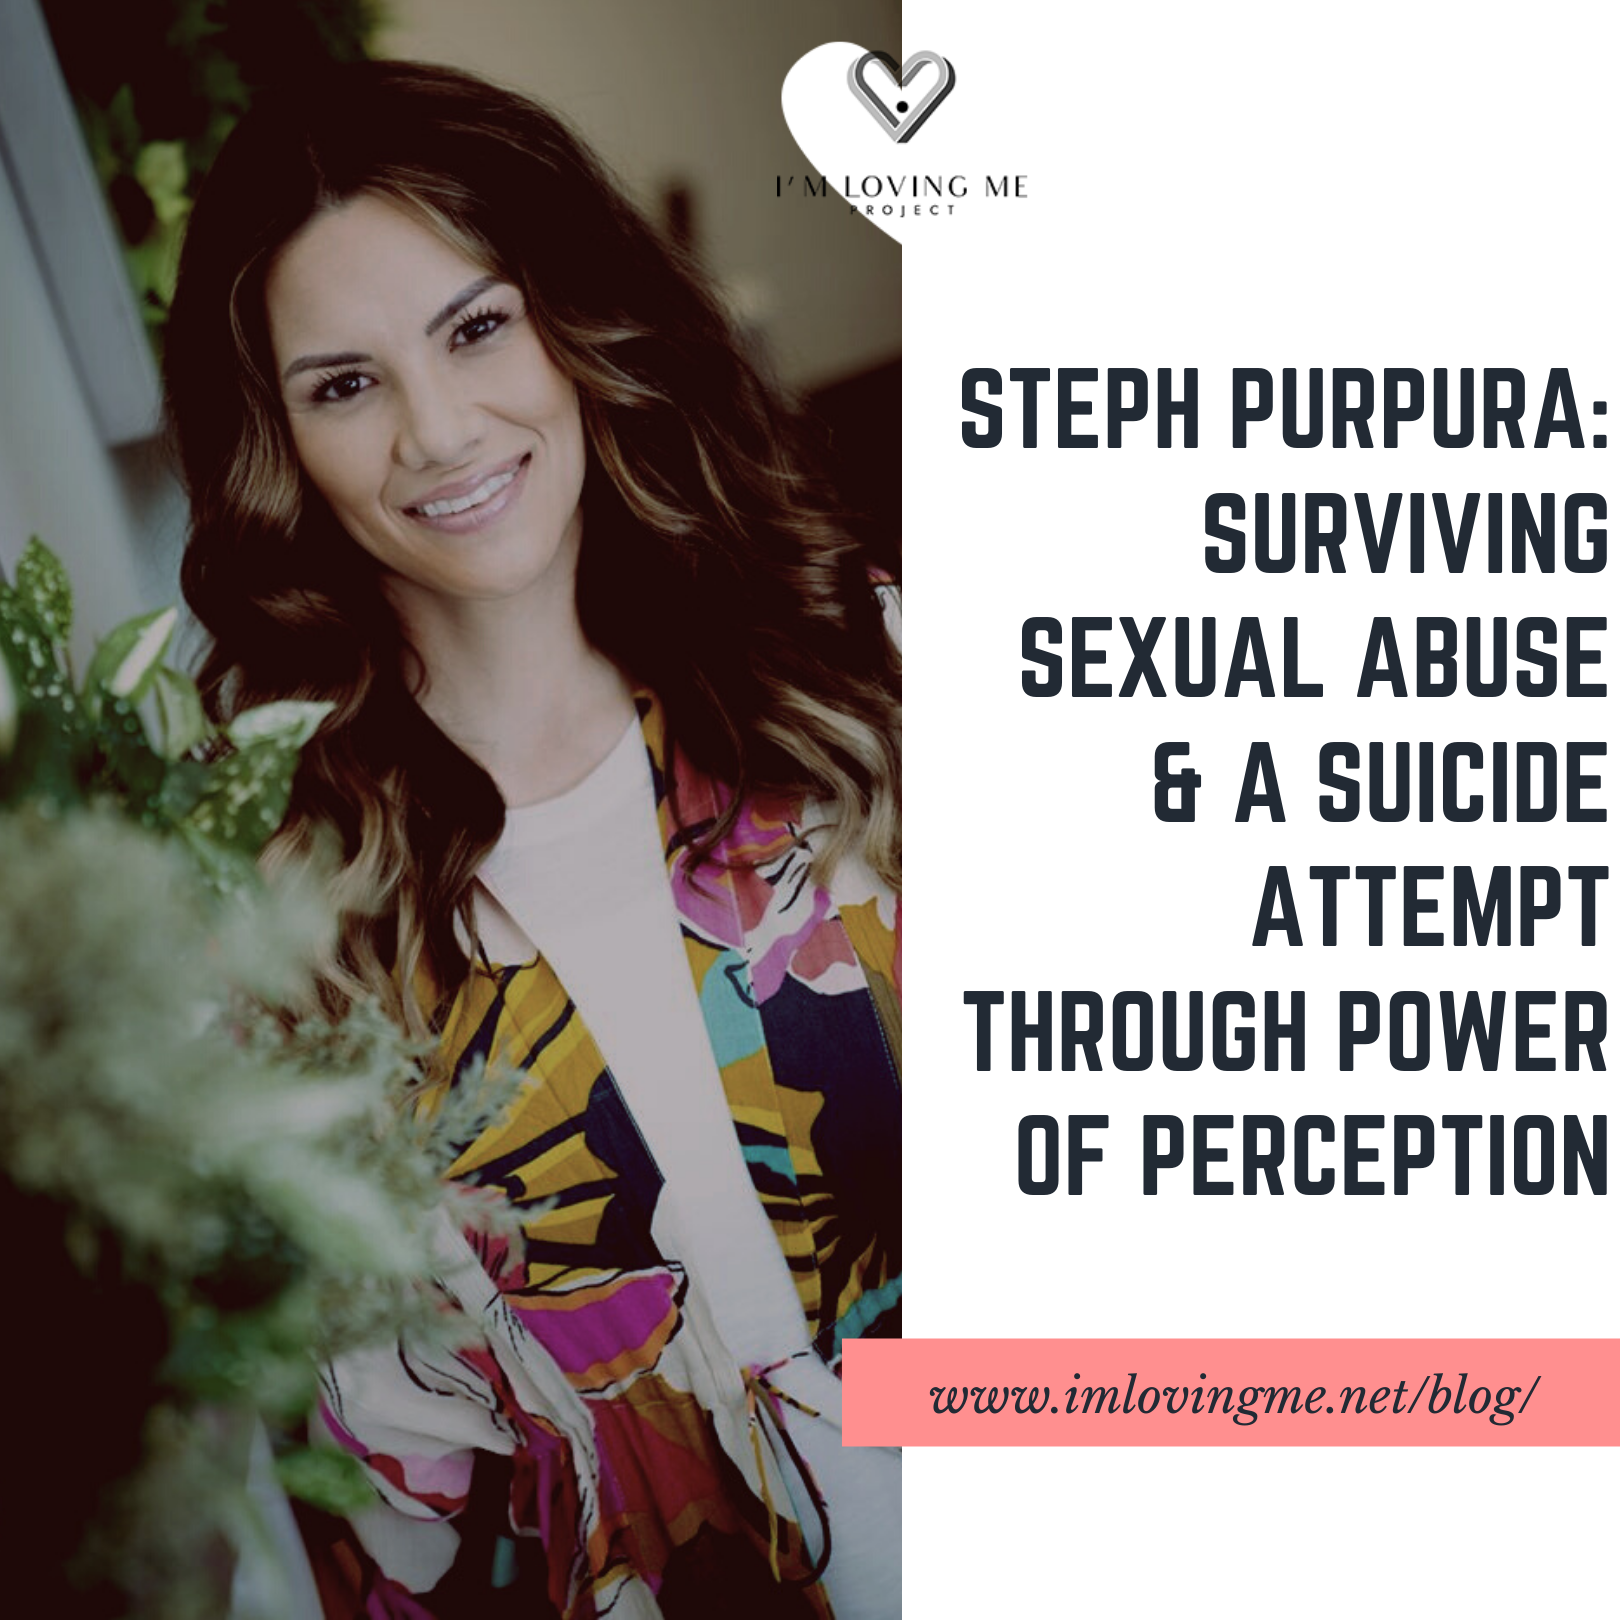 Steph Purpura: Surviving Sexual Abuse & A Suicide Attempt Through Power of Perception